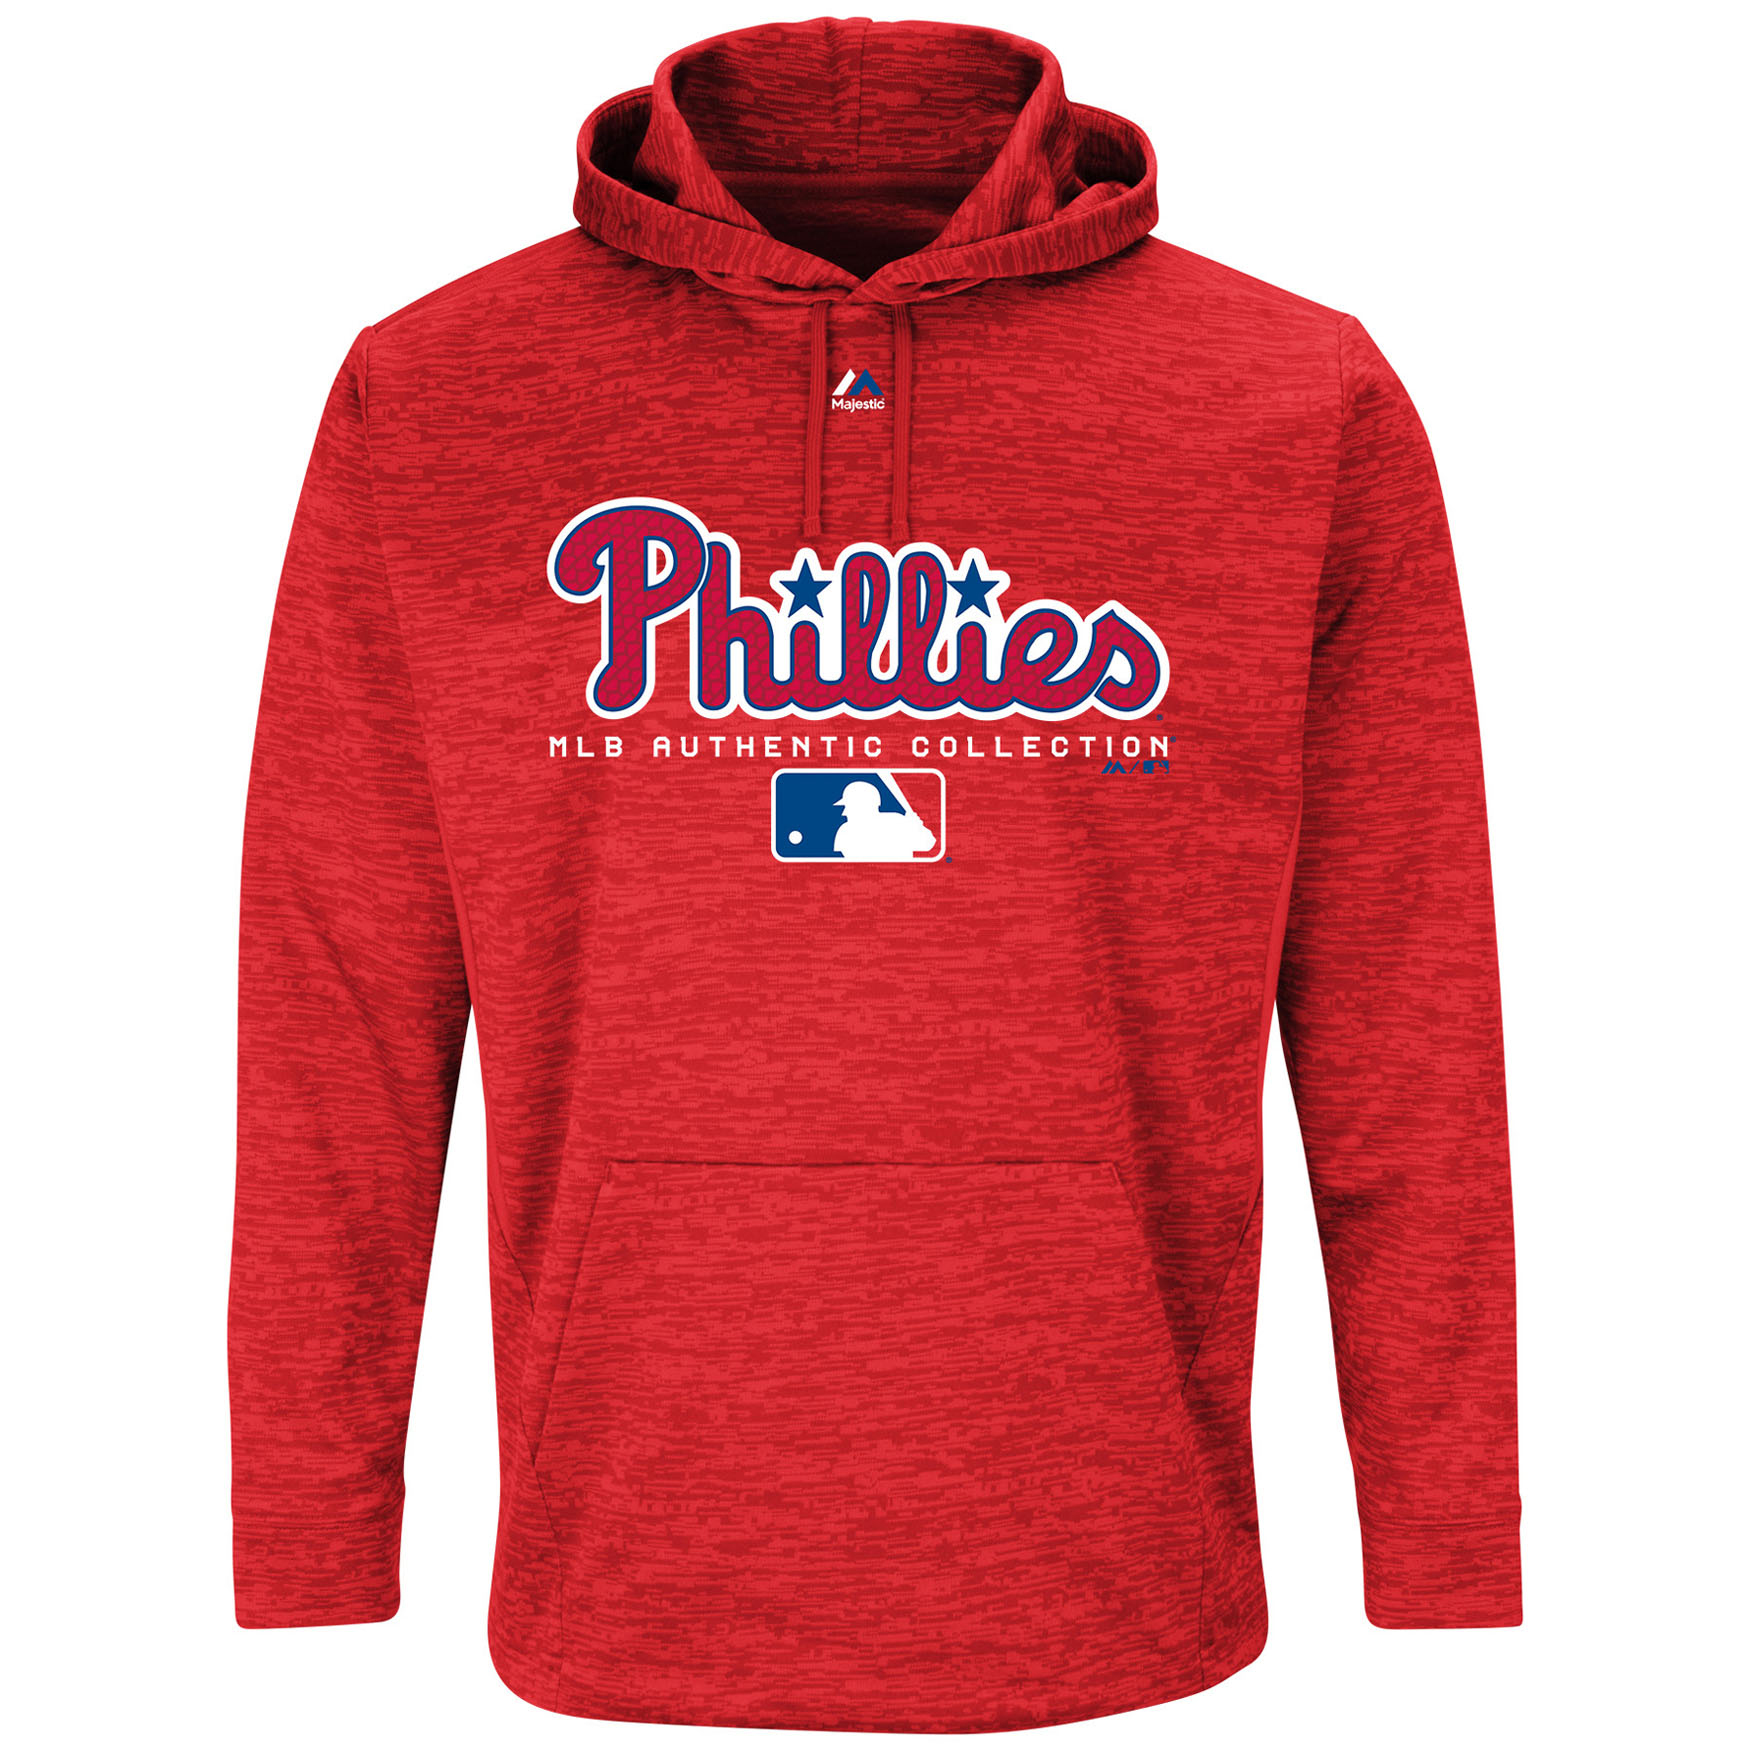 Philadelphia Phillies Majestic Authentic Collection Team Drive Ultra-Streak Fleece Pullover Hoodie - Red